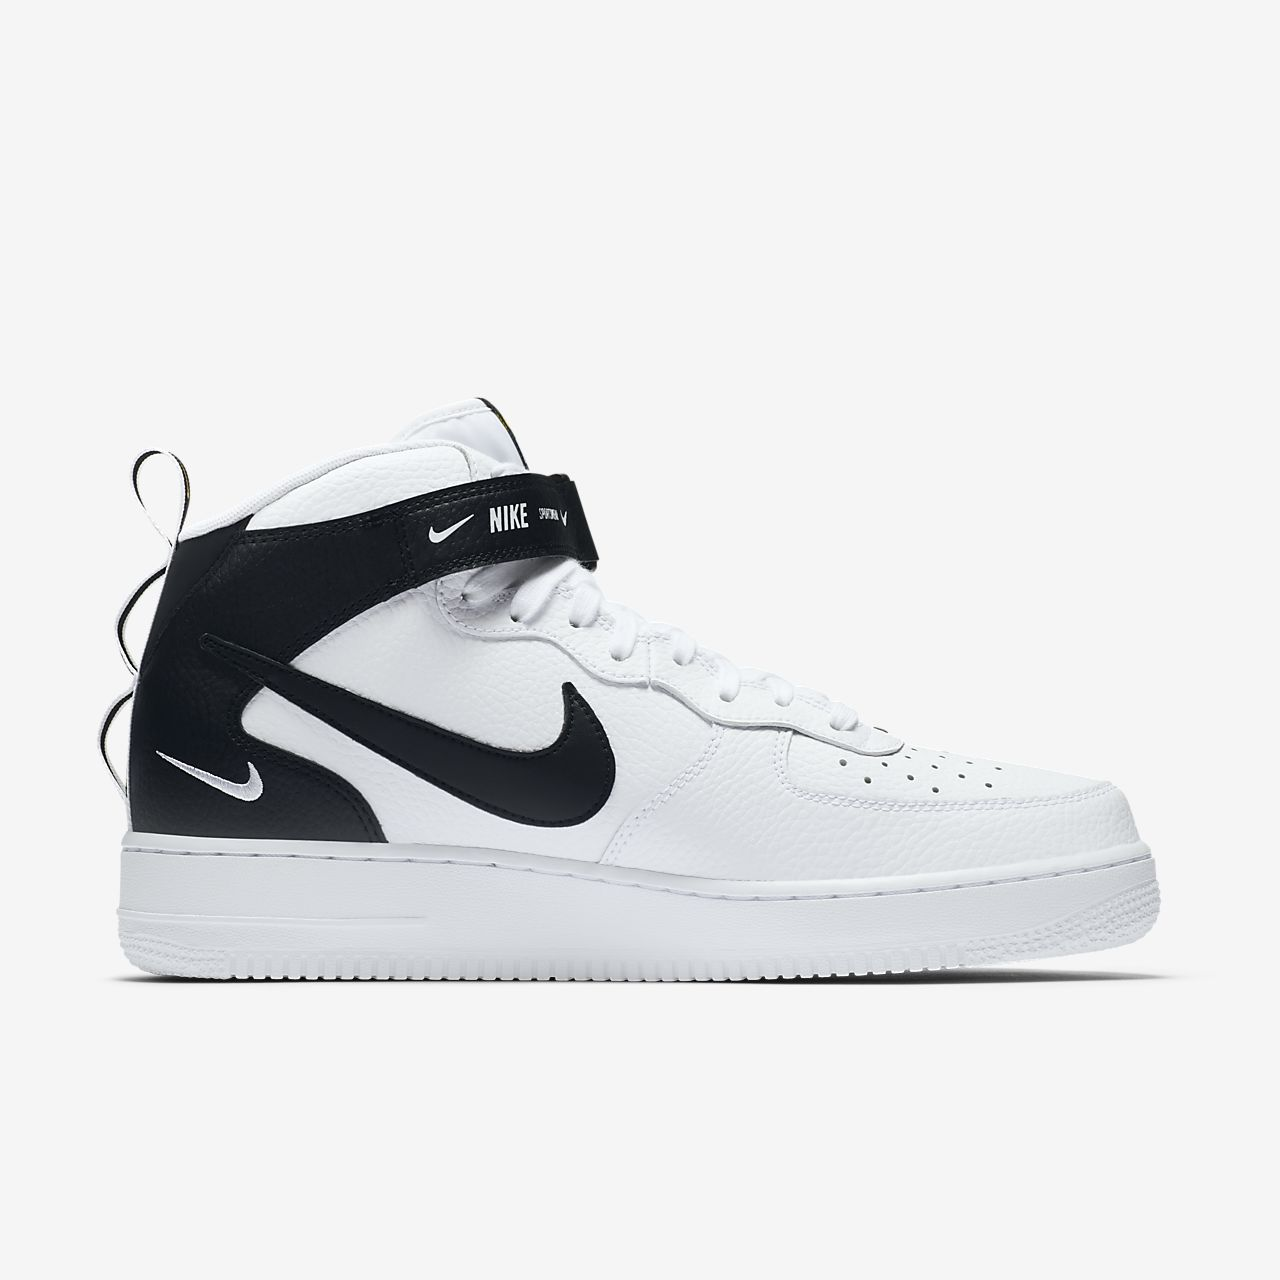 b8a4a8b34be Nike Air Force 1 07 Mid LV8 Men s Shoe. Nike.com CH